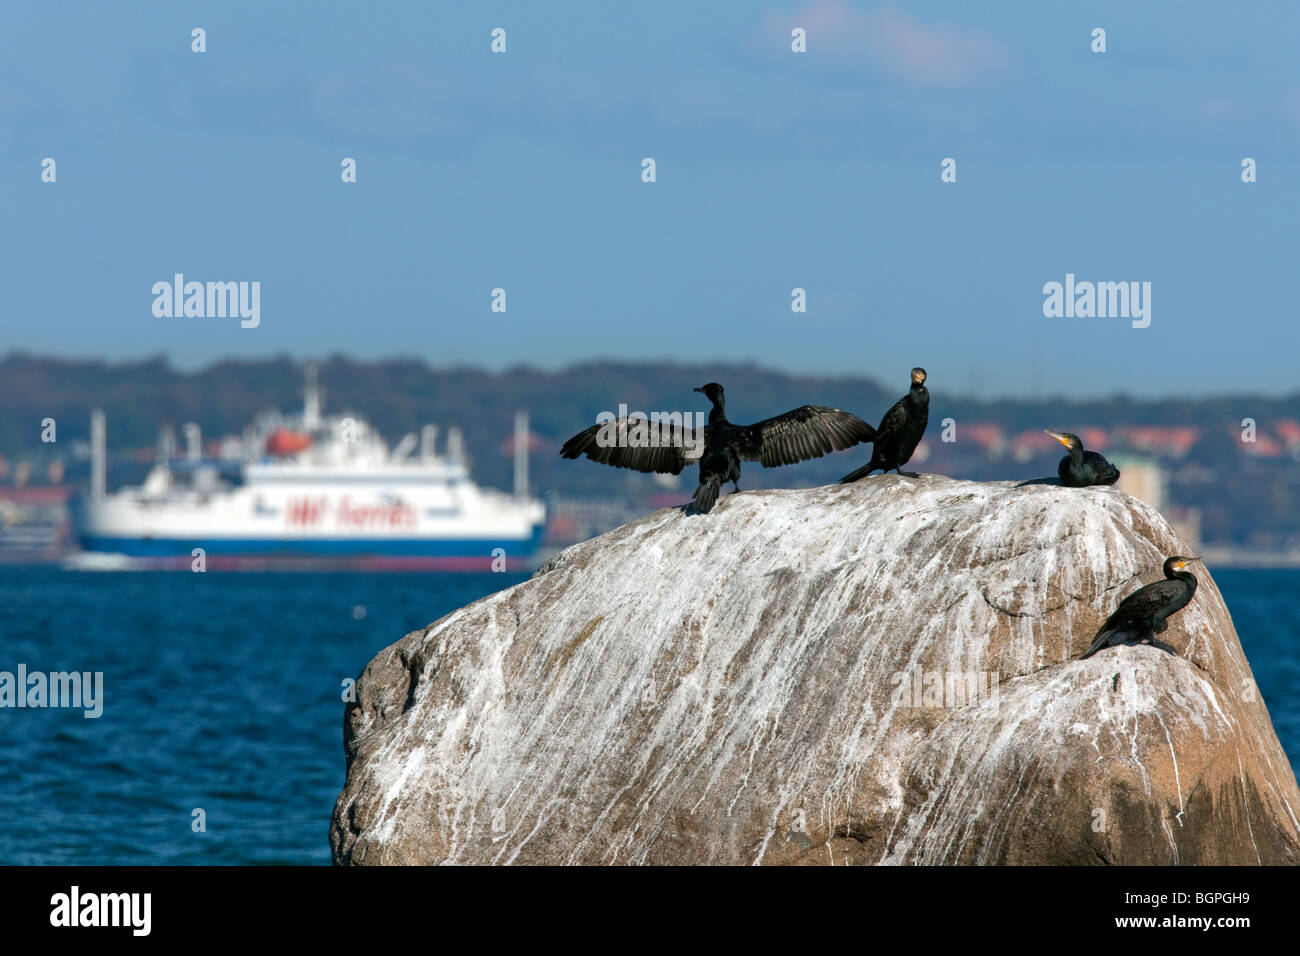 Great cormorants (Phalacrocorax carbo) with wings spread on rock in the sea, Denmark - Stock Image